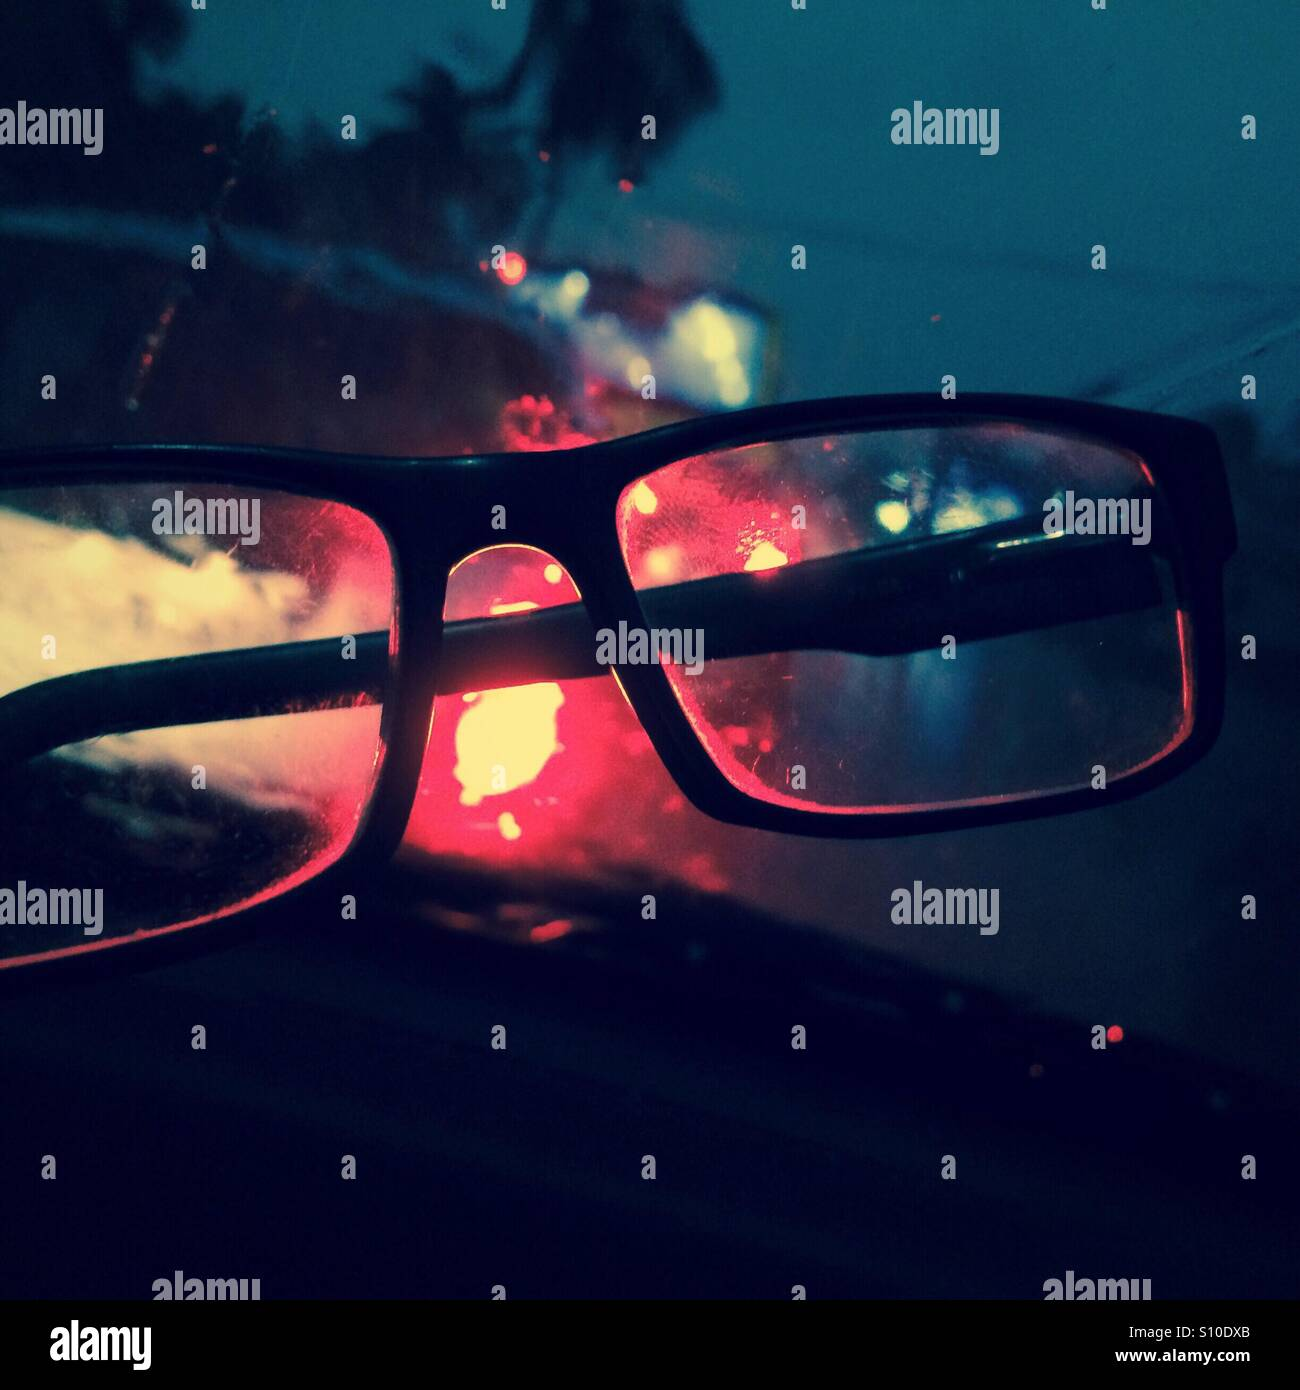 View through a spectacle of a moving road in a rainy night - Stock Image